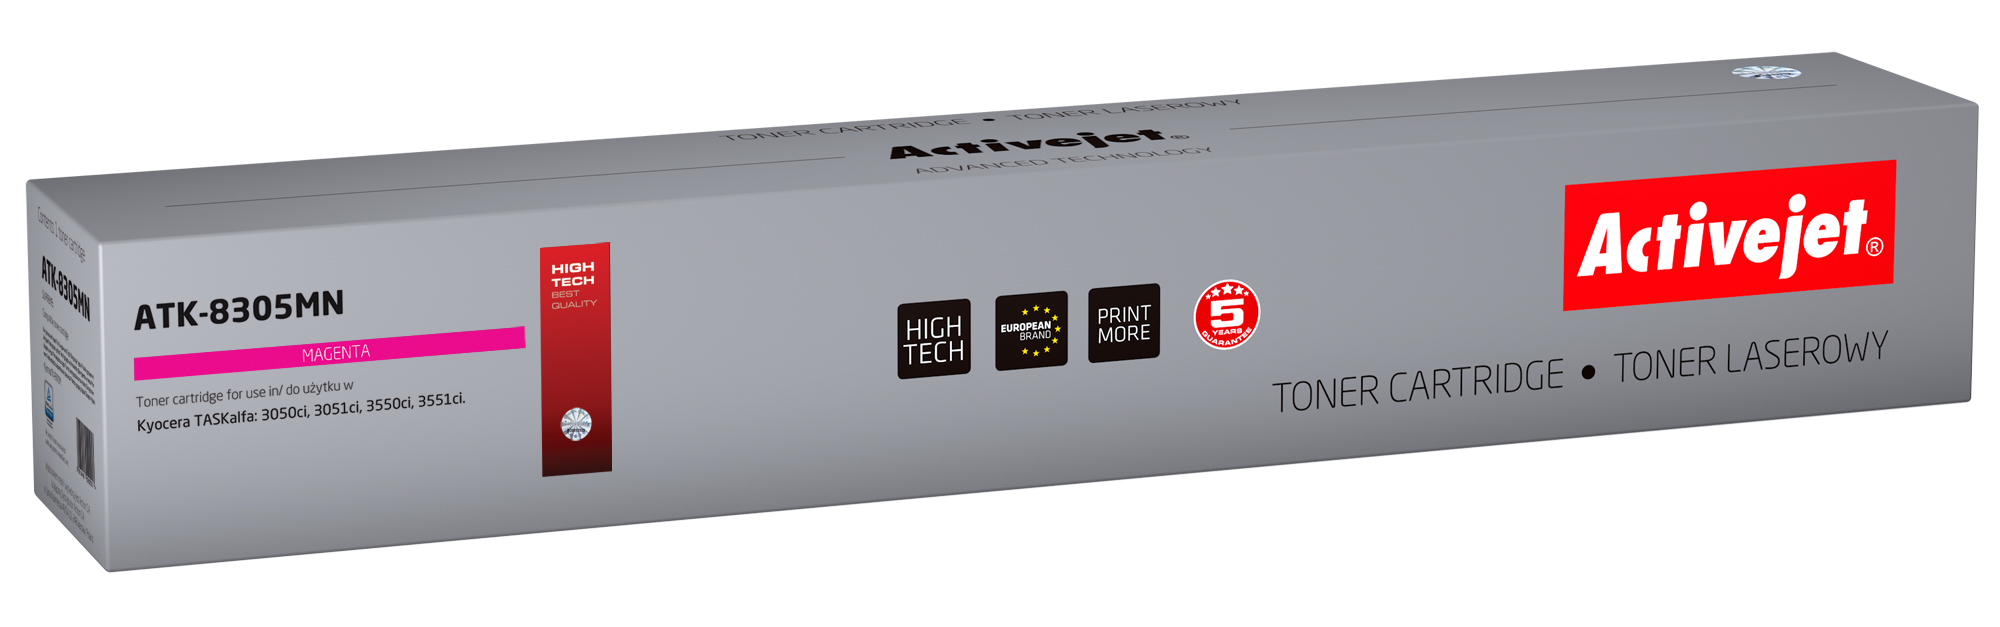 ActiveJet toner do Kyocera TK-8305M new ATK-8305MN